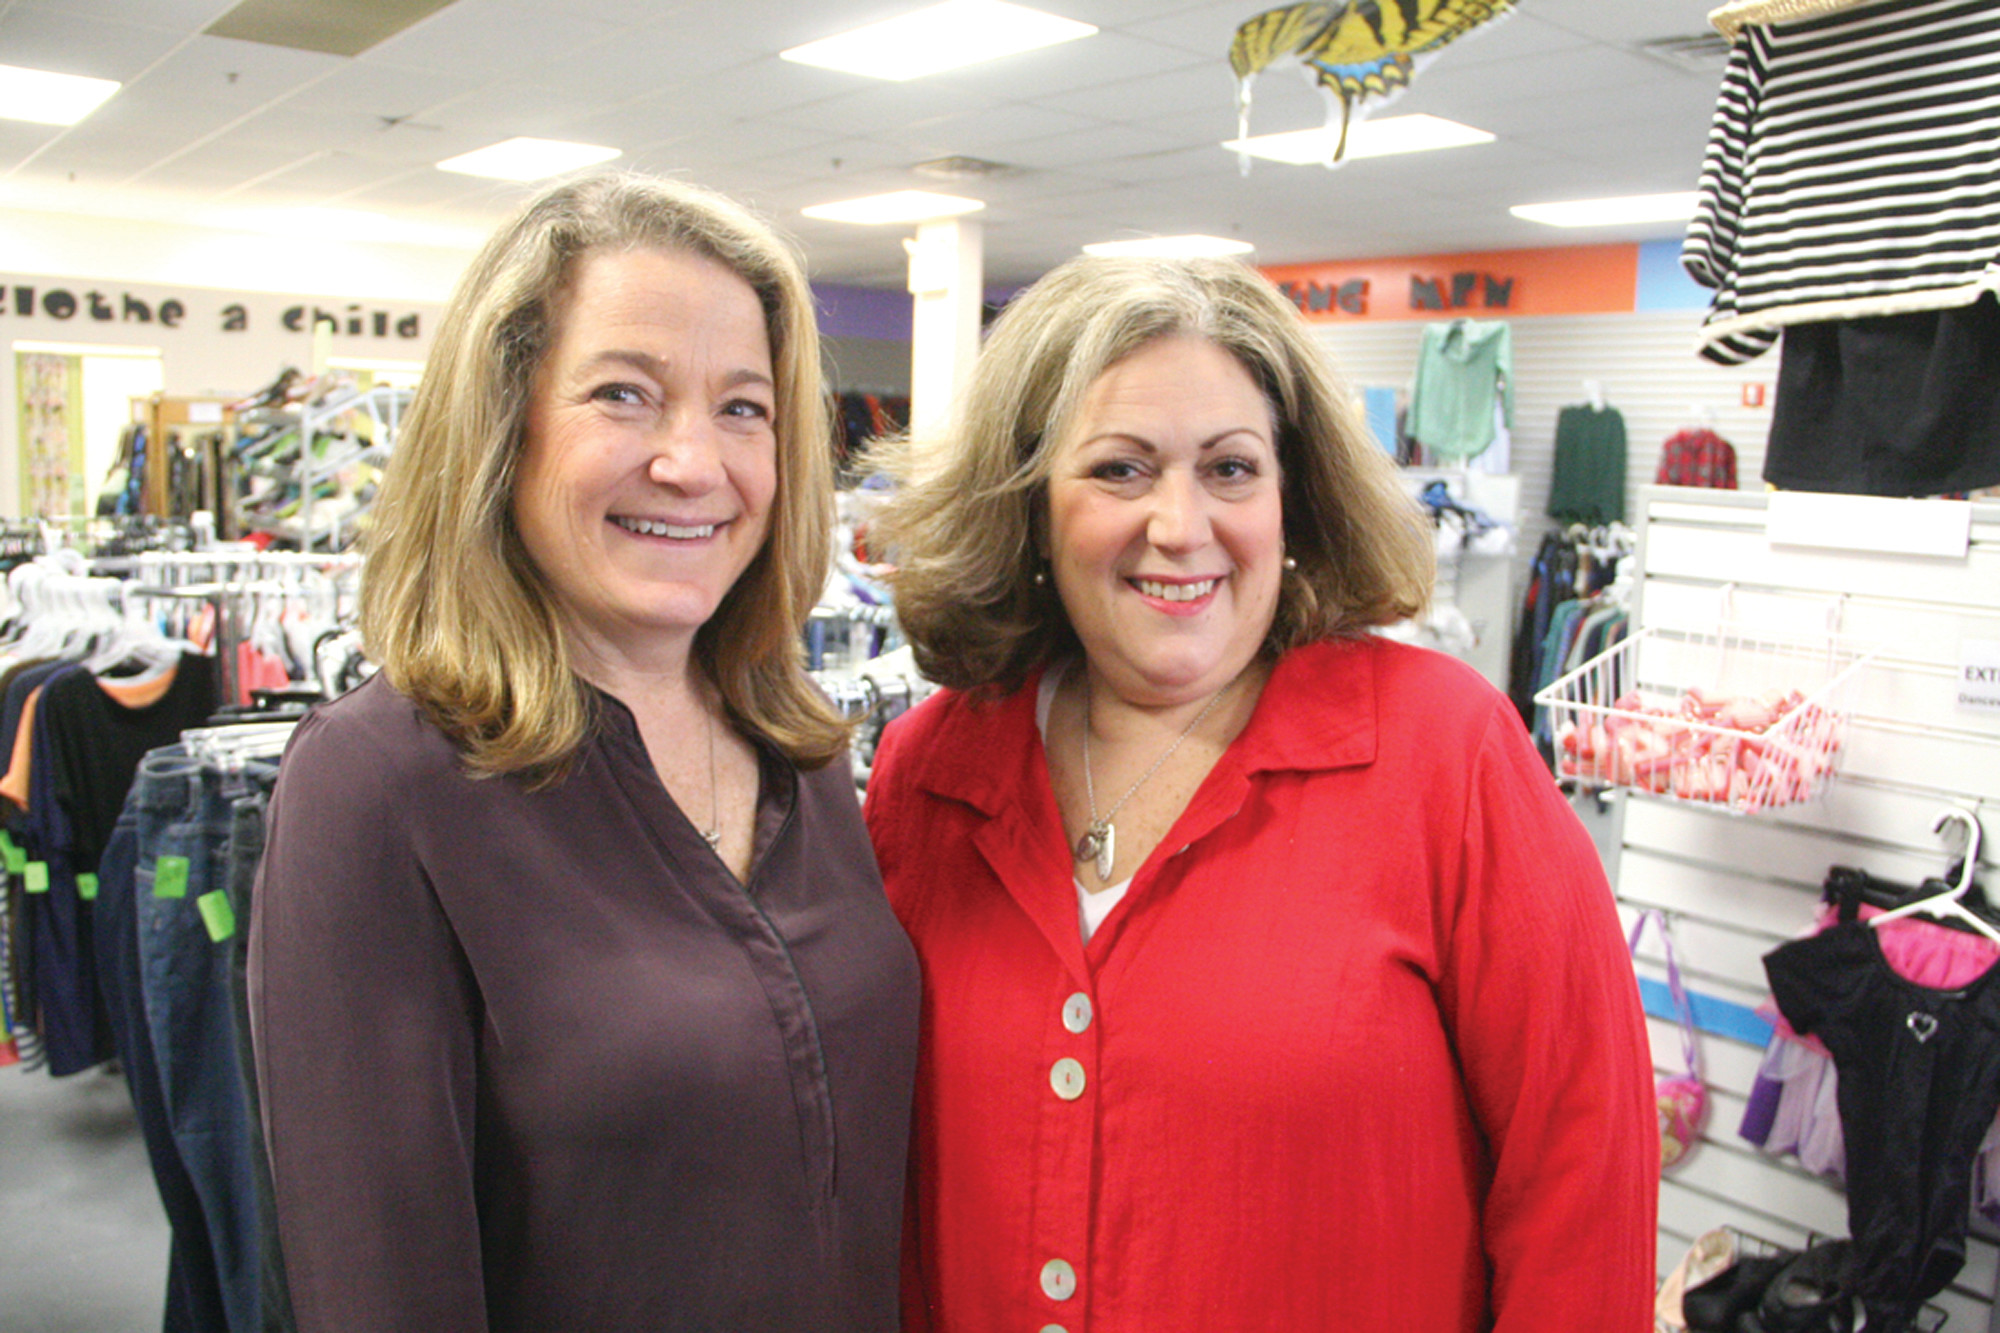 FRIENDS SINCE LAW SCHOOL: Marianne Baldwin and Eva Mancuso, co-founders of Clothes to Kids RI share a laugh in the store. On a recent weekend the pair visited numerous Walmarts to take advantage of a $5 special on kids' sneakers.